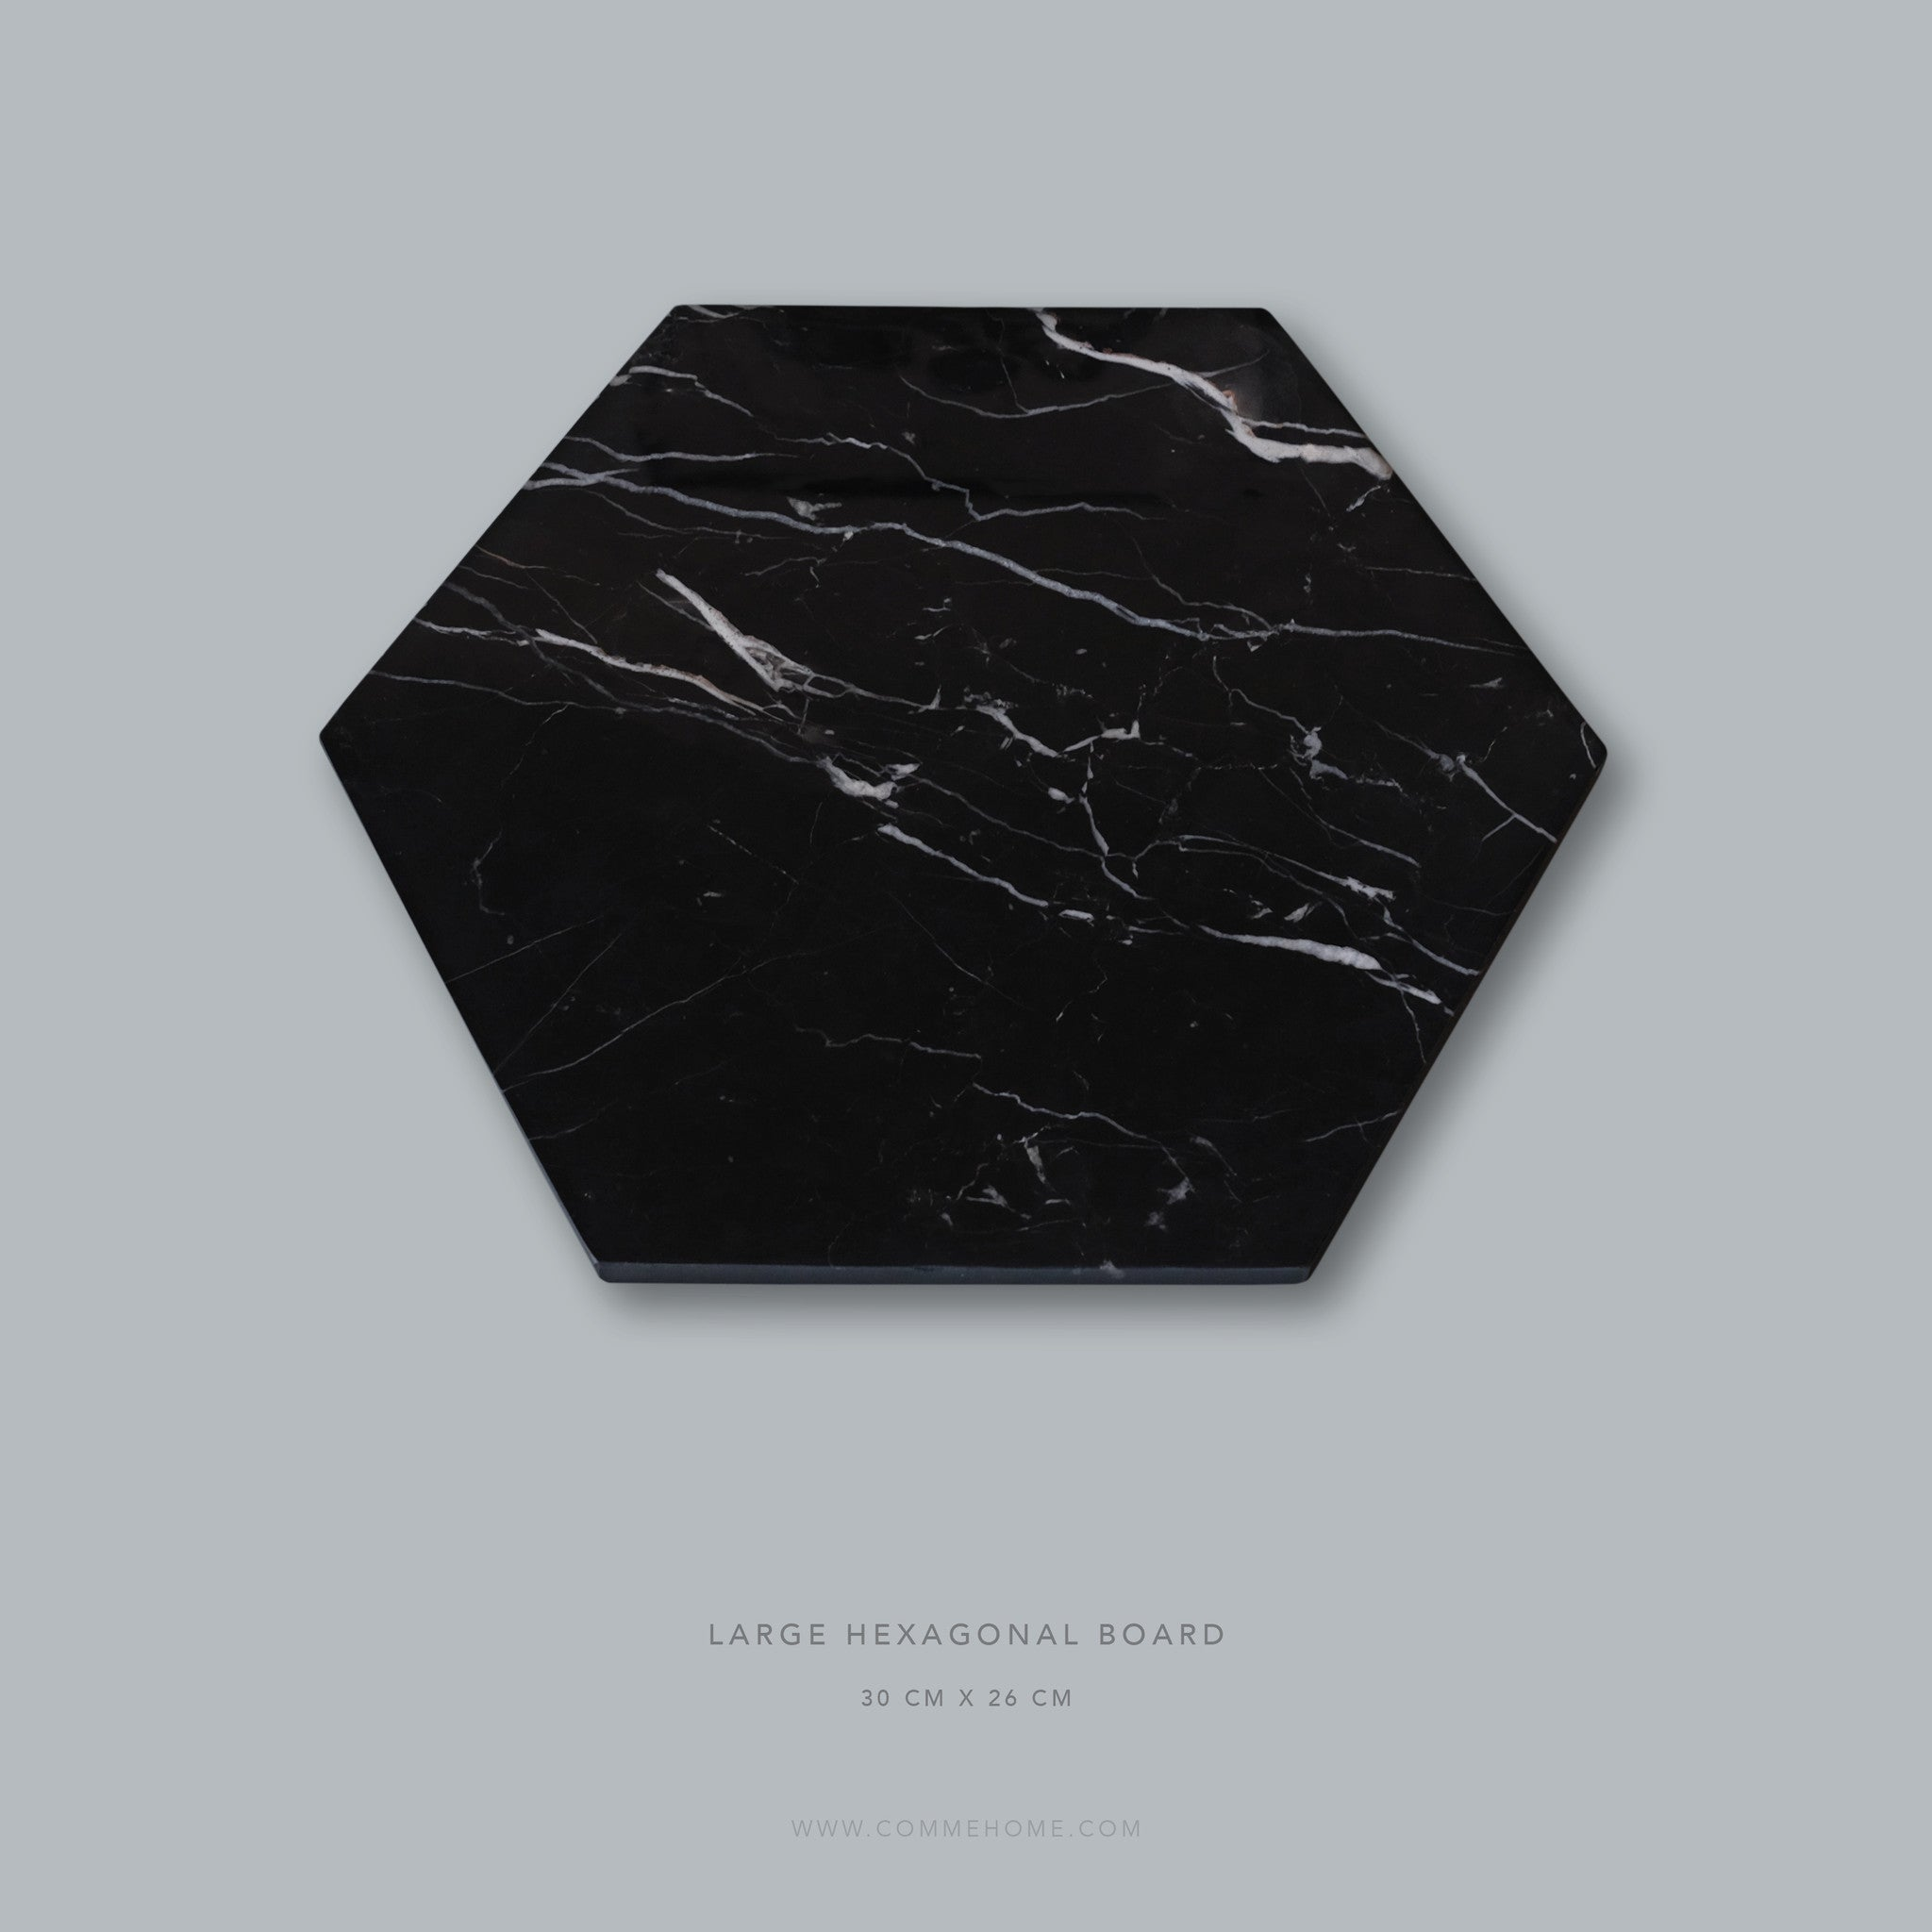 Marble Tray Singapore by Comme Home - Comme Home, Singapore